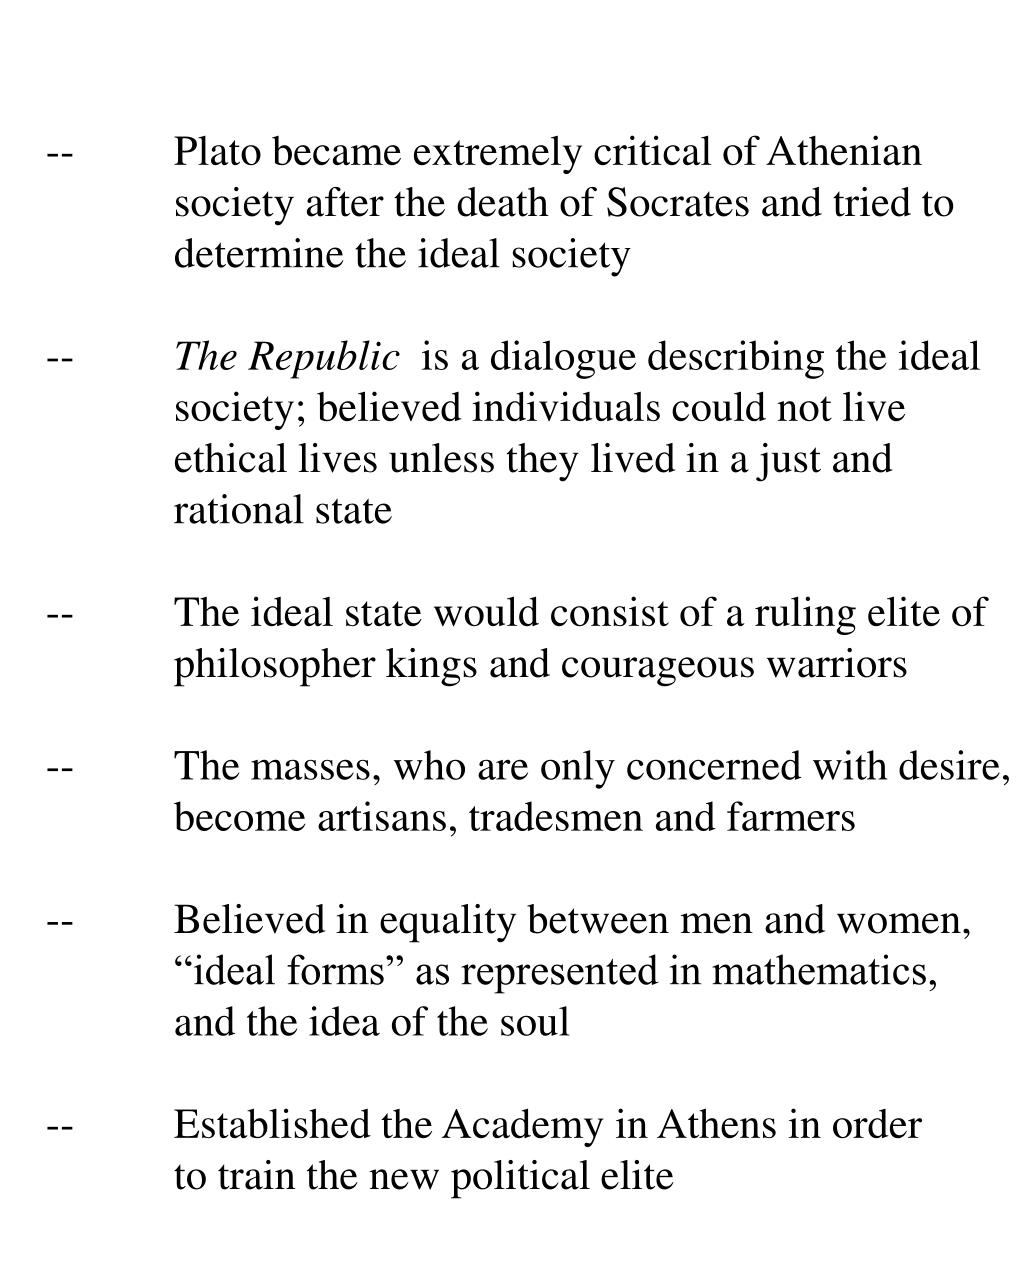 -- Plato became extremely critical of Athenian